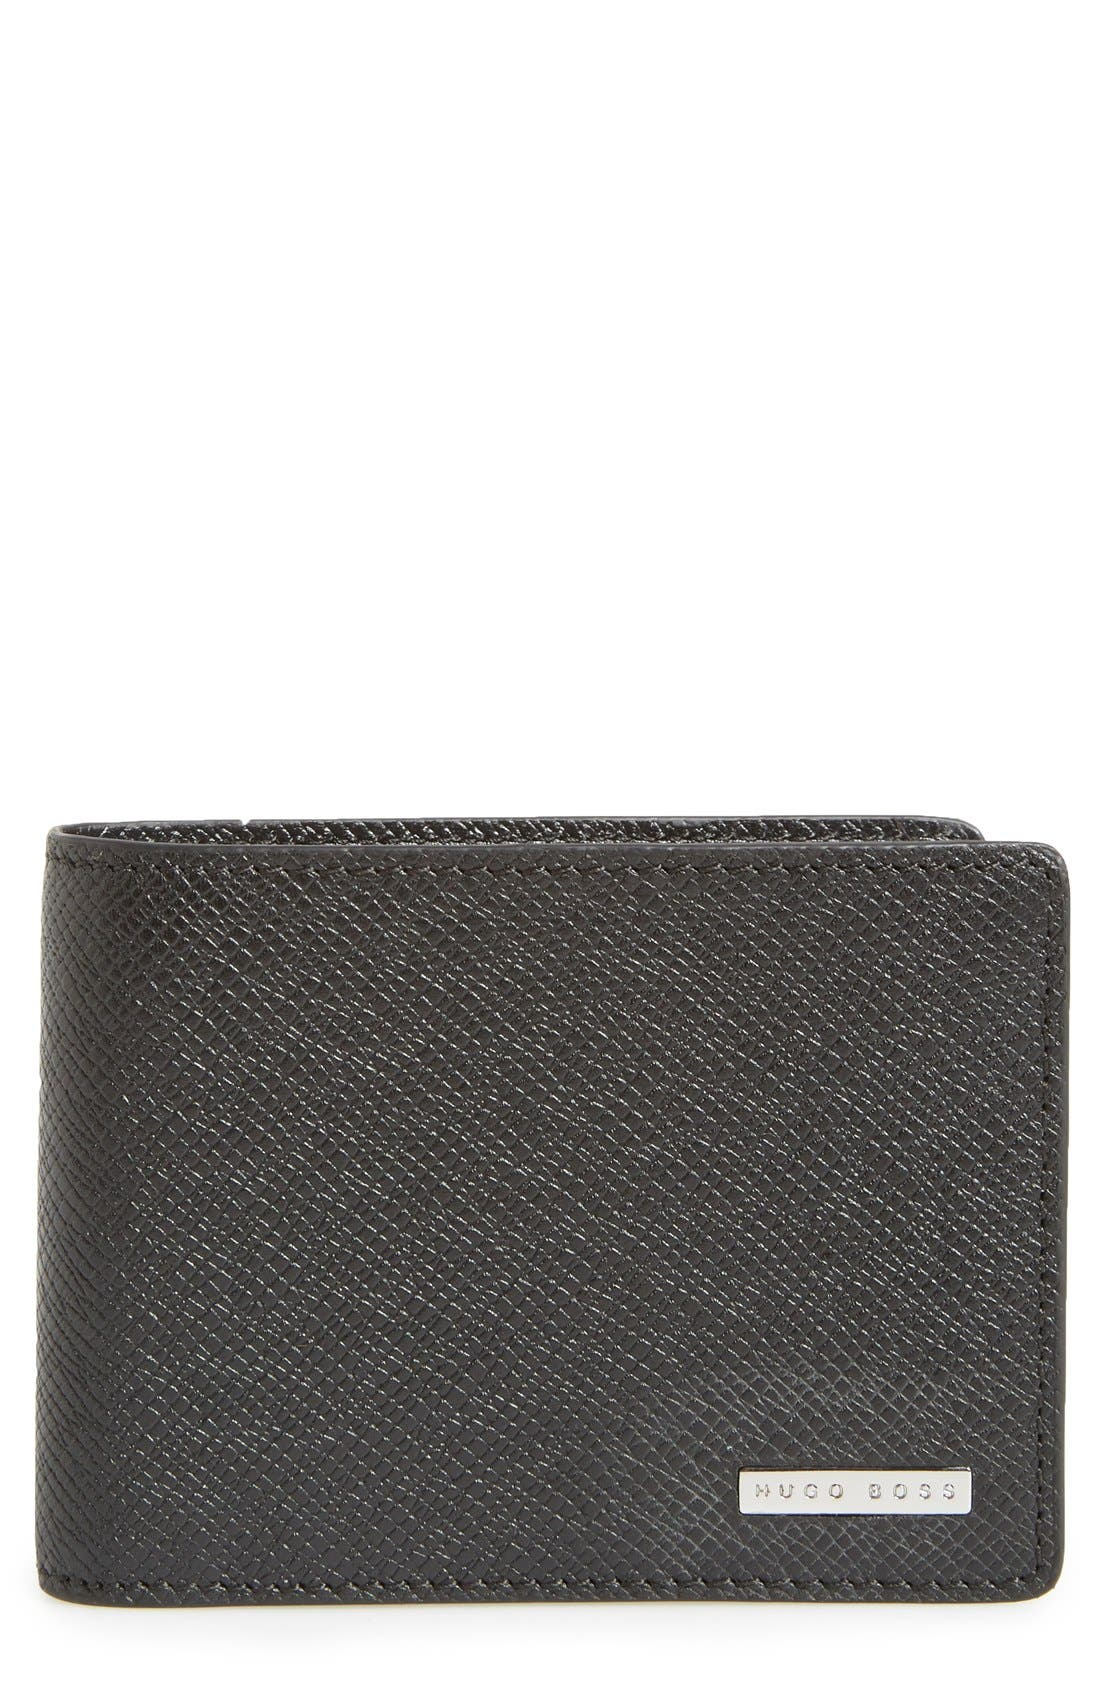 BOSS, 'Signature' Bifold Calfskin Leather Wallet, Main thumbnail 1, color, BLACK